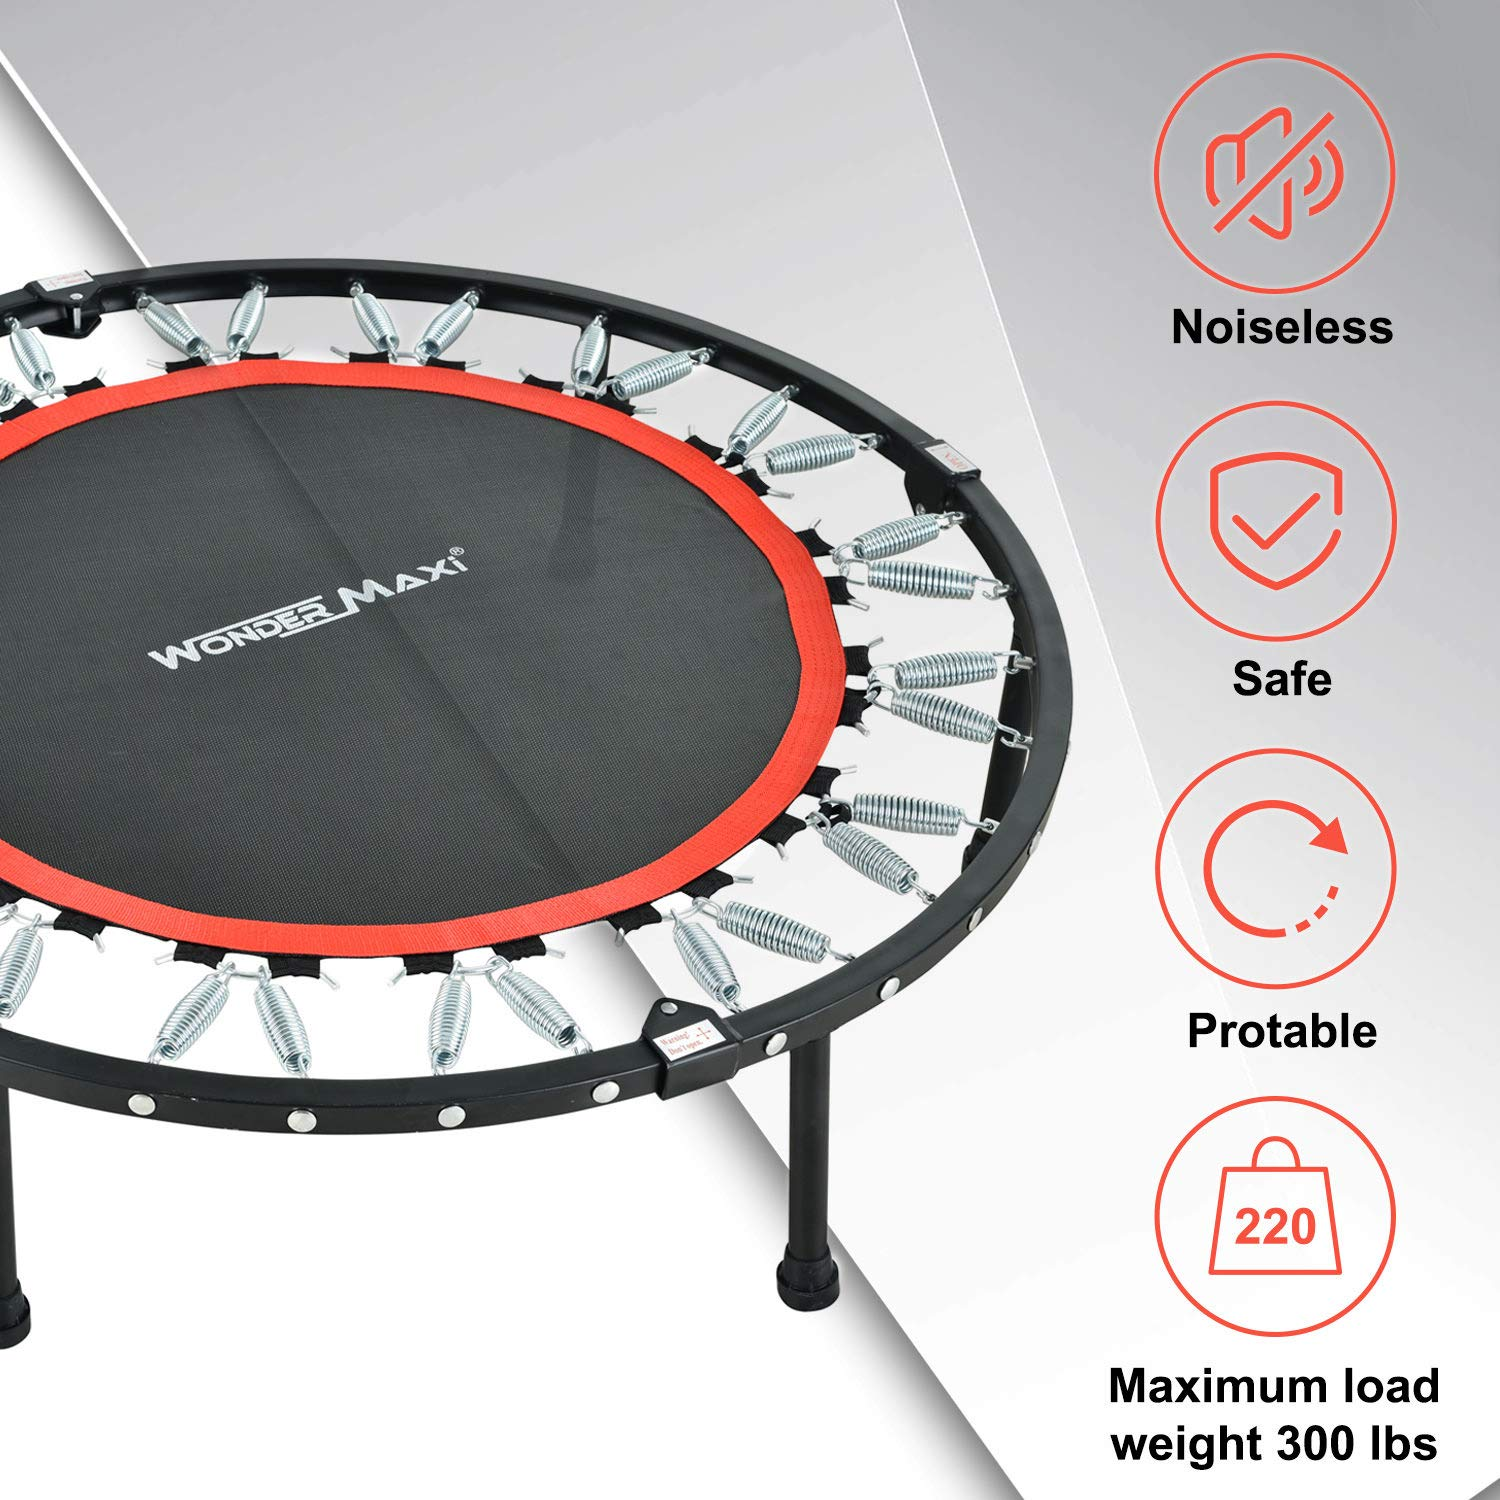 Wonder Maxi Mini Portable Foldable Exercise Trampoline 40 Inch Fitness Rebounder Trampoline with Adjustable Handrail and Safety Pad for Adults Kids Indoor Garden Workout Cardio